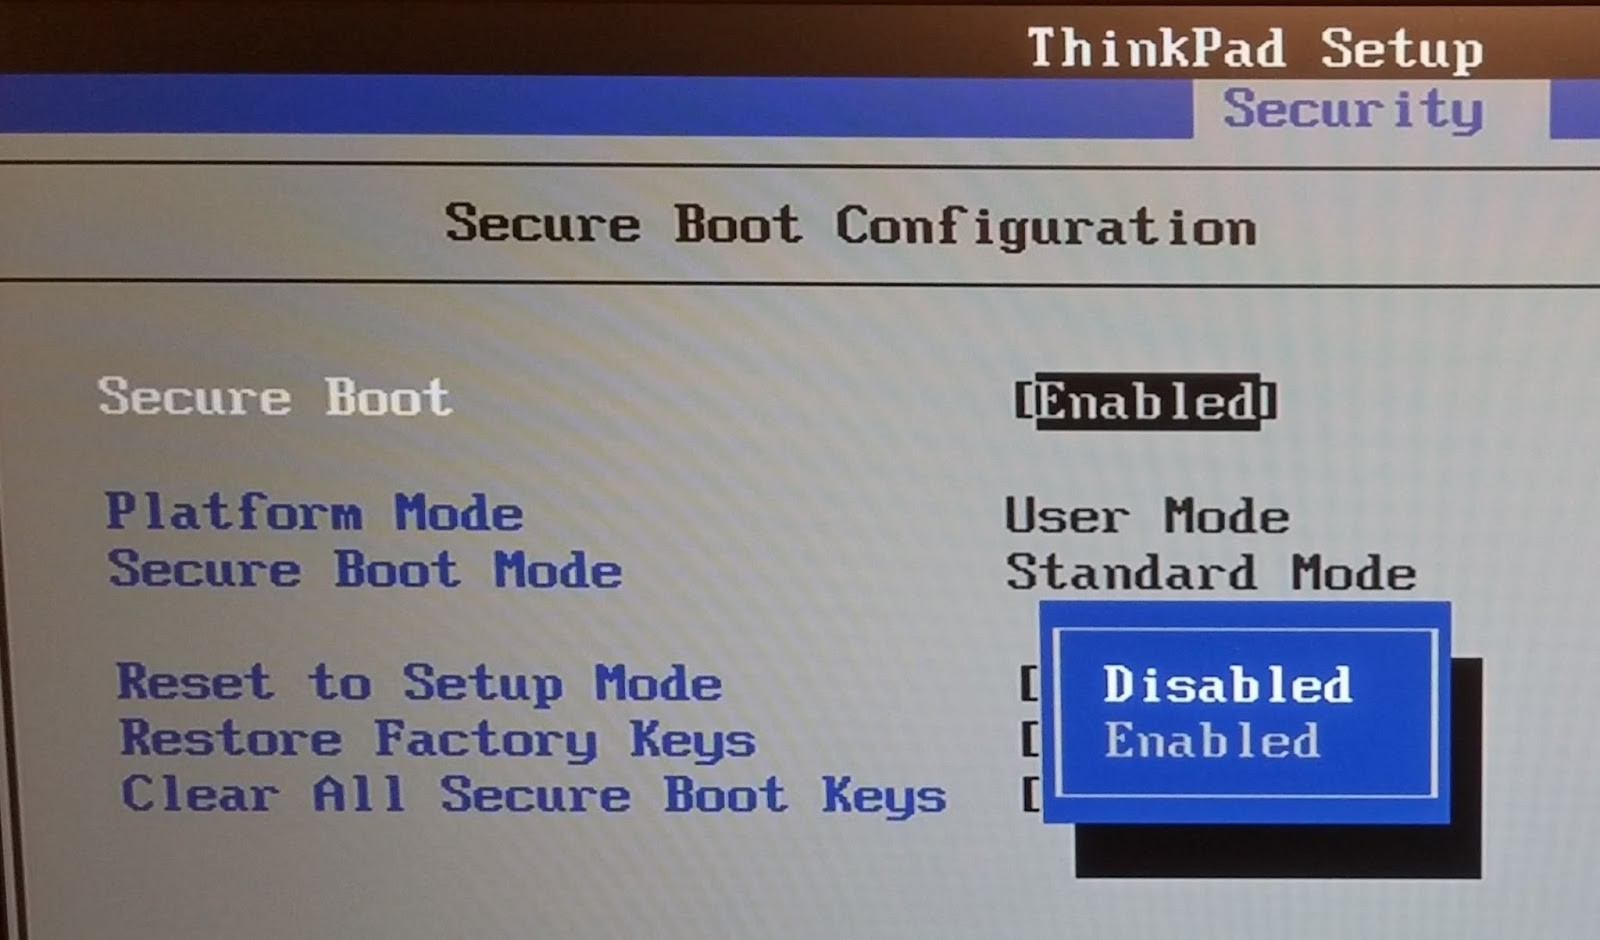 How to configure your BIOS to allow for PXE network or USB booting